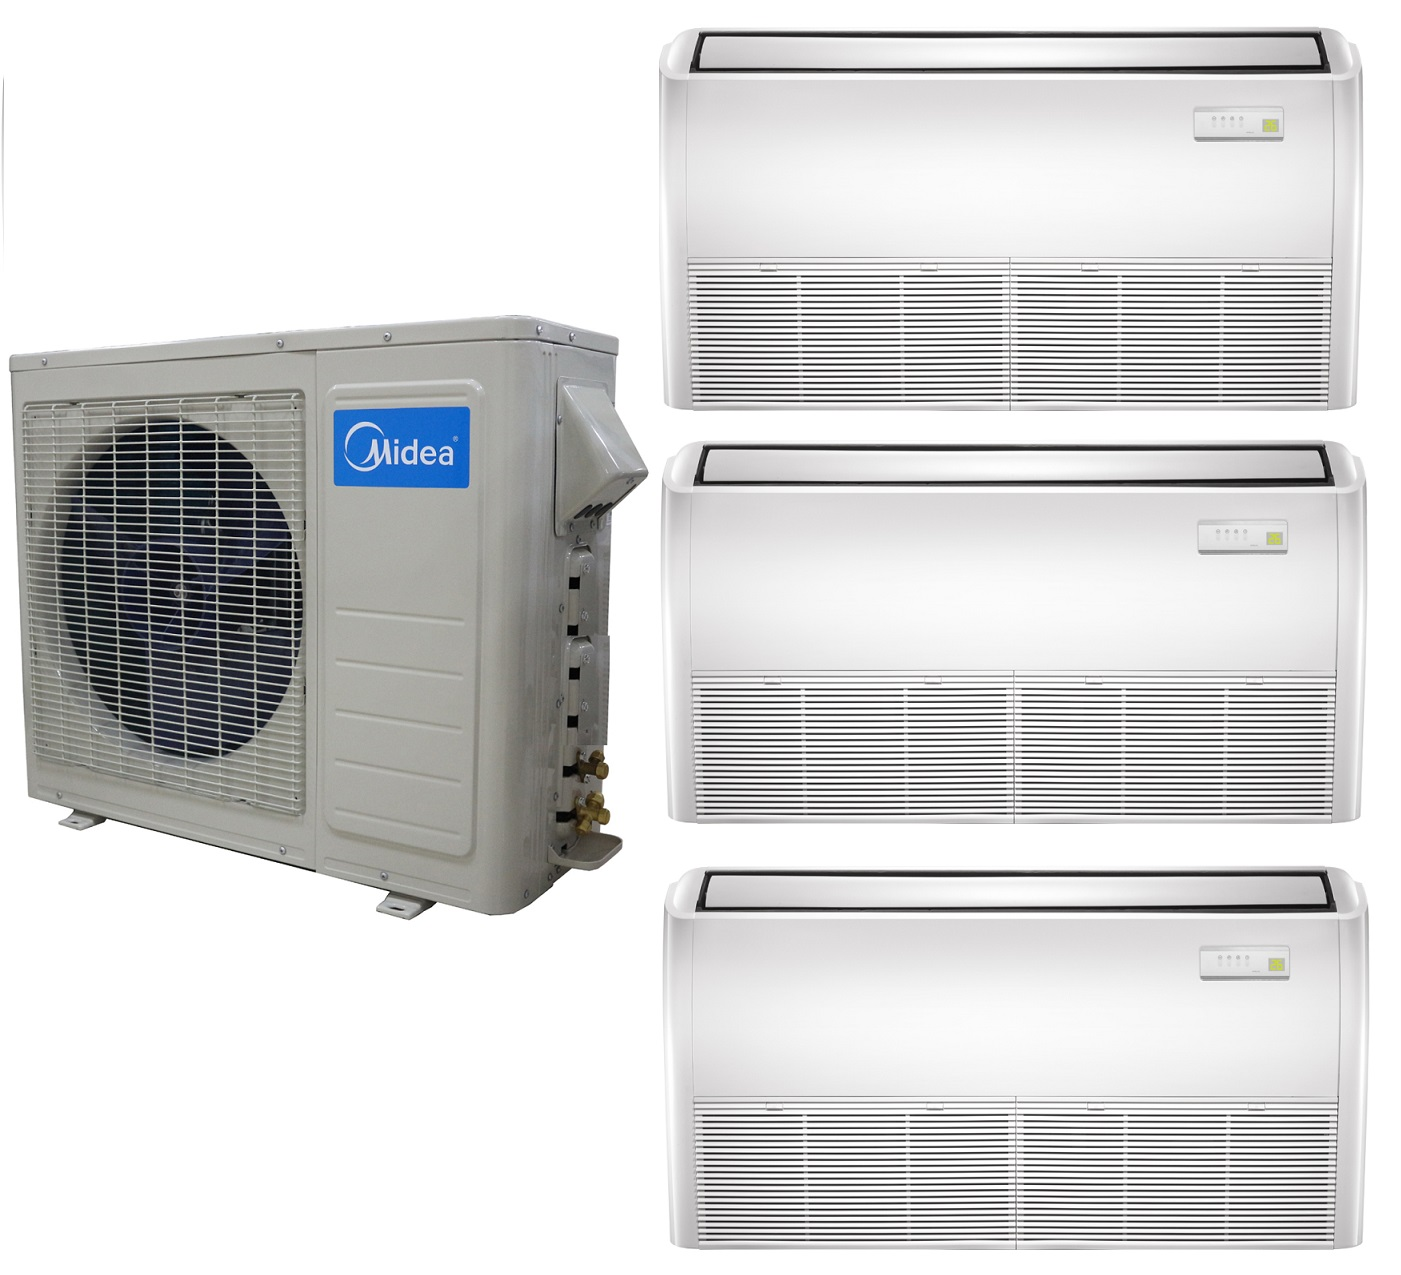 Midea Dual Zone 12k Ceiling Cassette Mini Split Heat Pump AC #165EB5